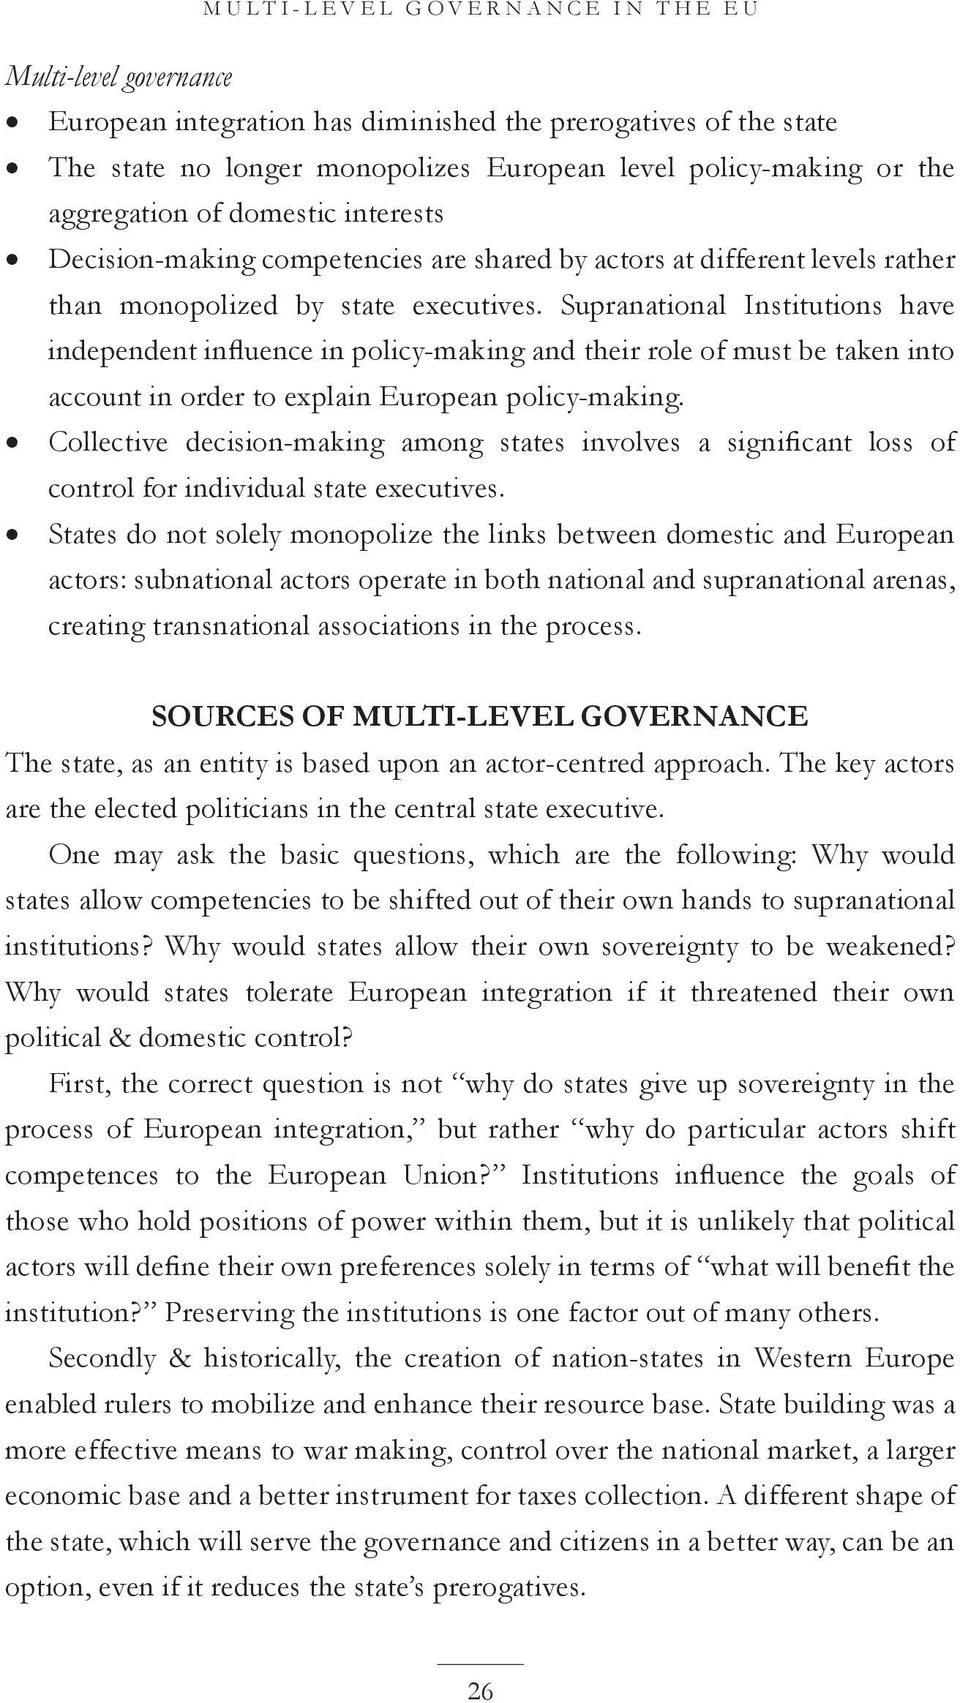 Supranational Institutions have independent influence in policy-making and their role of must be taken into account in order to explain European policy-making.